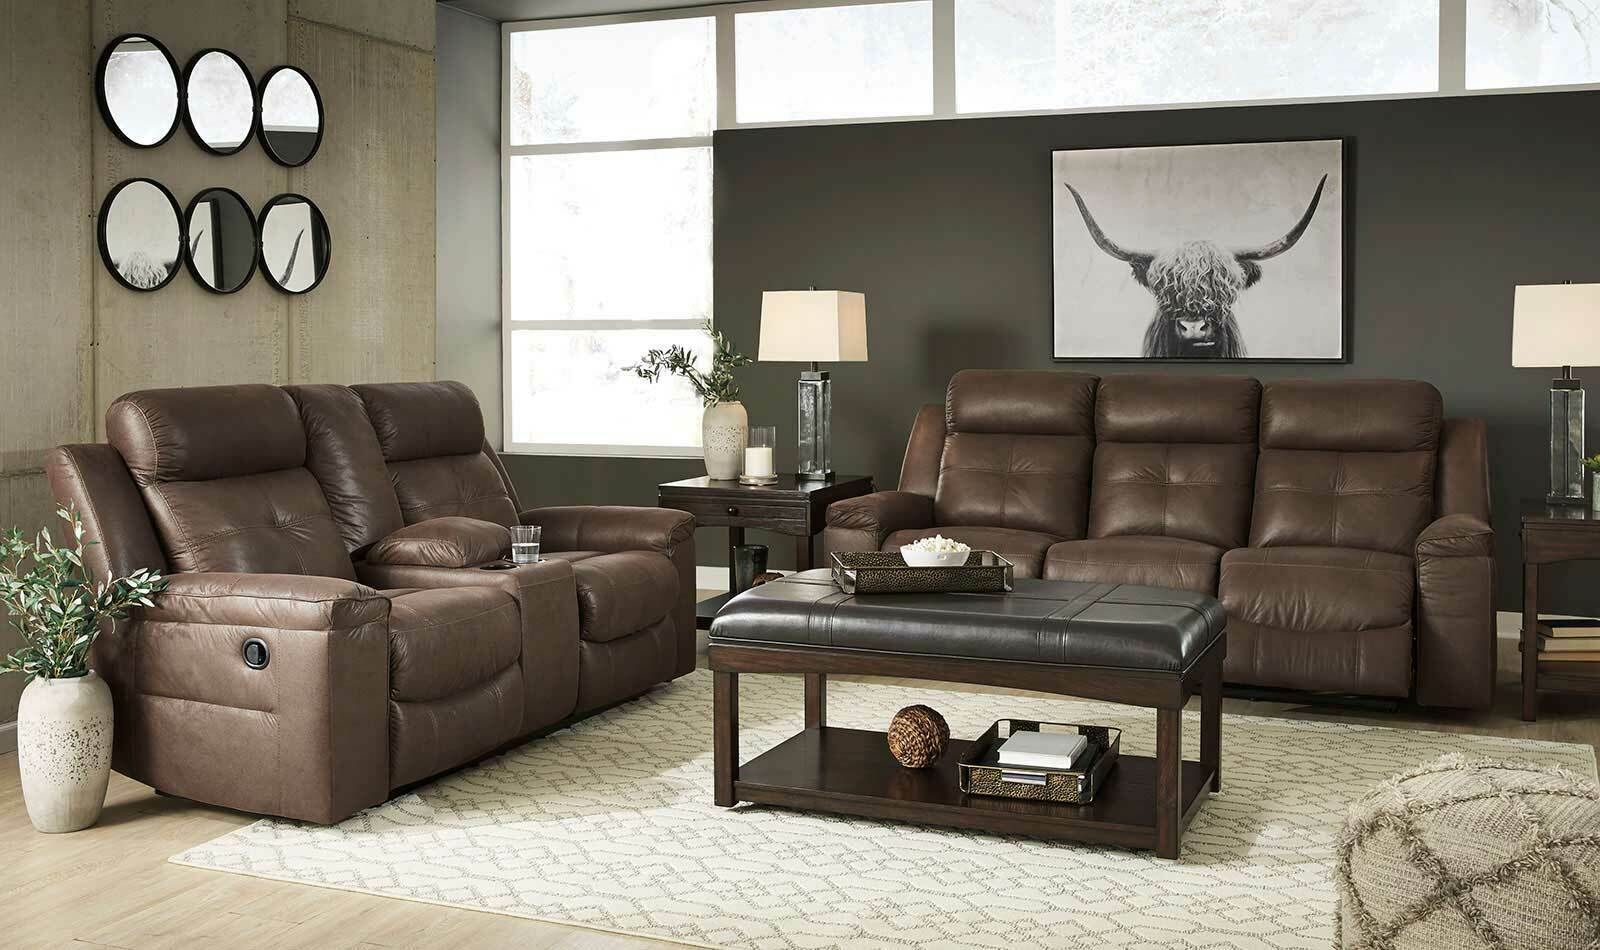 Modern Living Room Furniture Brown Fabric Reclining 2 Piece Sofa Couch Set If02 Sofas Li In 2020 Modern Furniture Living Room Living Room Sofa Living Room Furniture